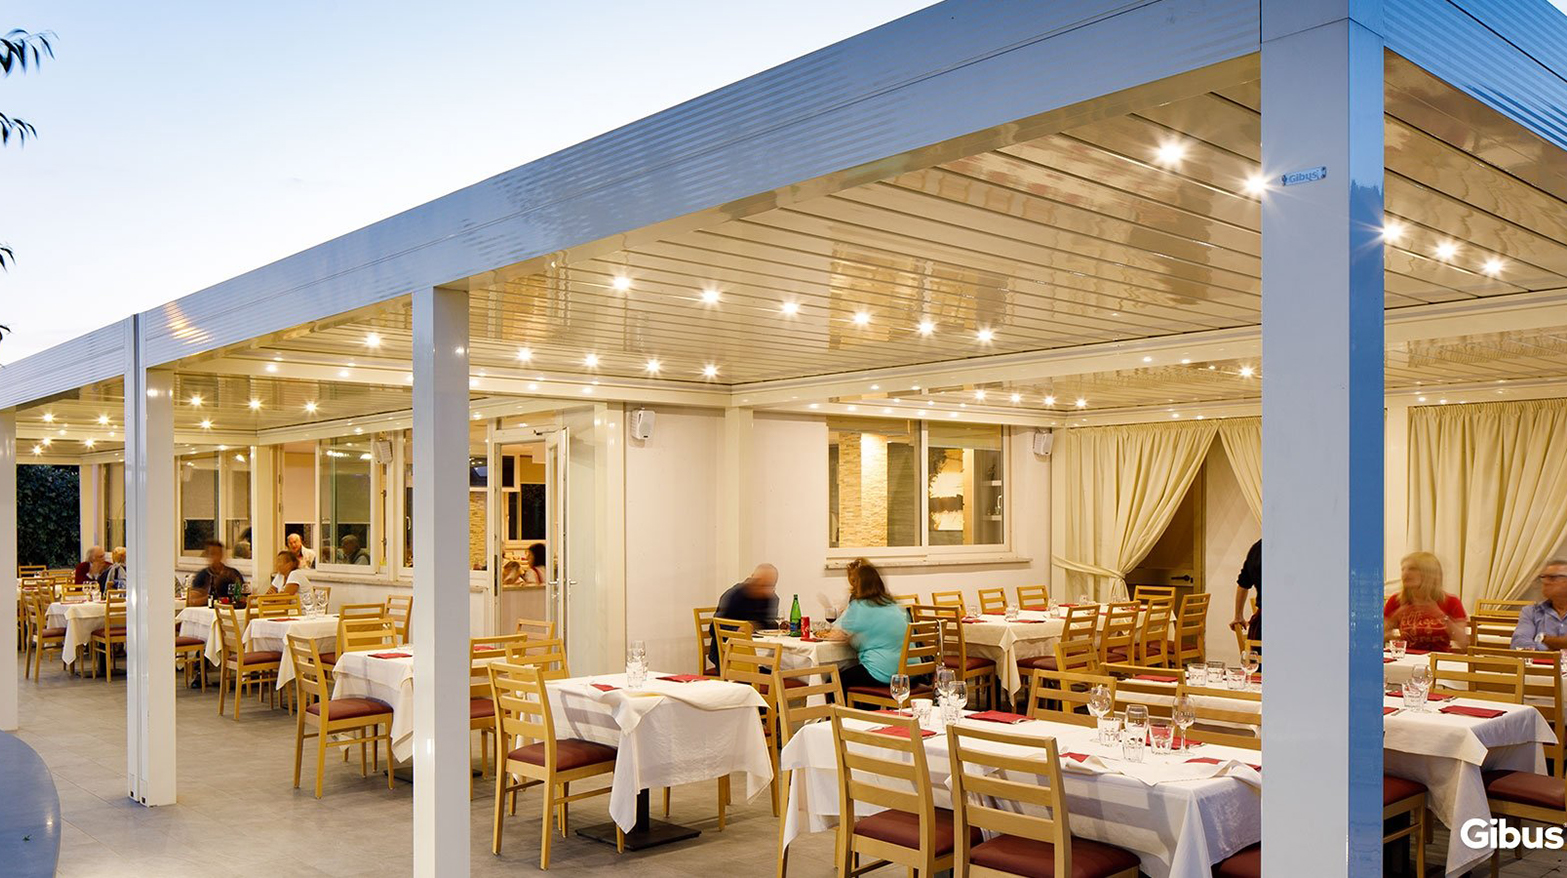 Gibus med systems used for outside dining